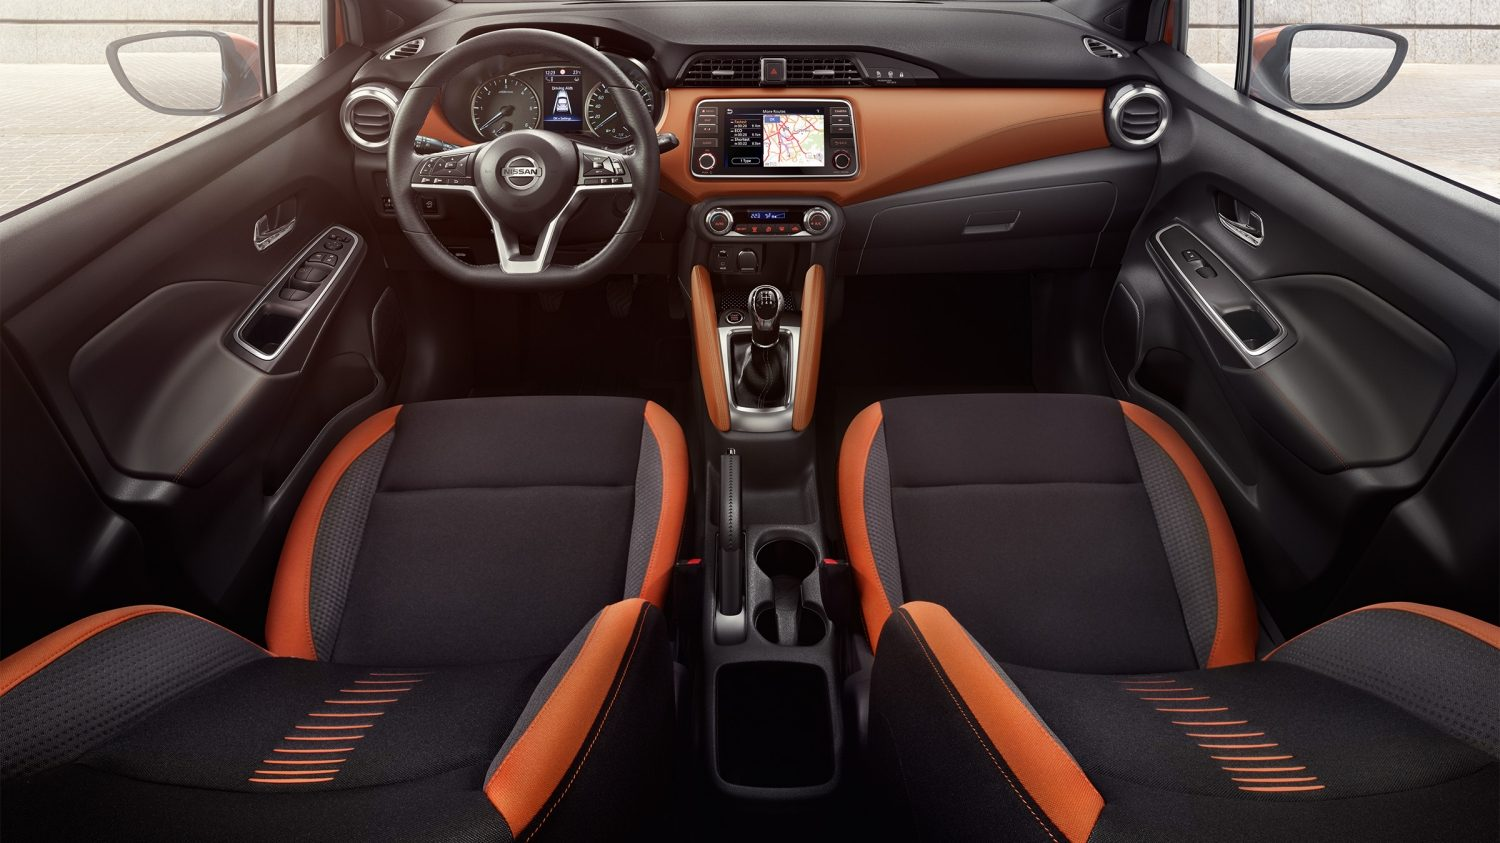 NISSAN MICRA Innenraum in Energy Orange